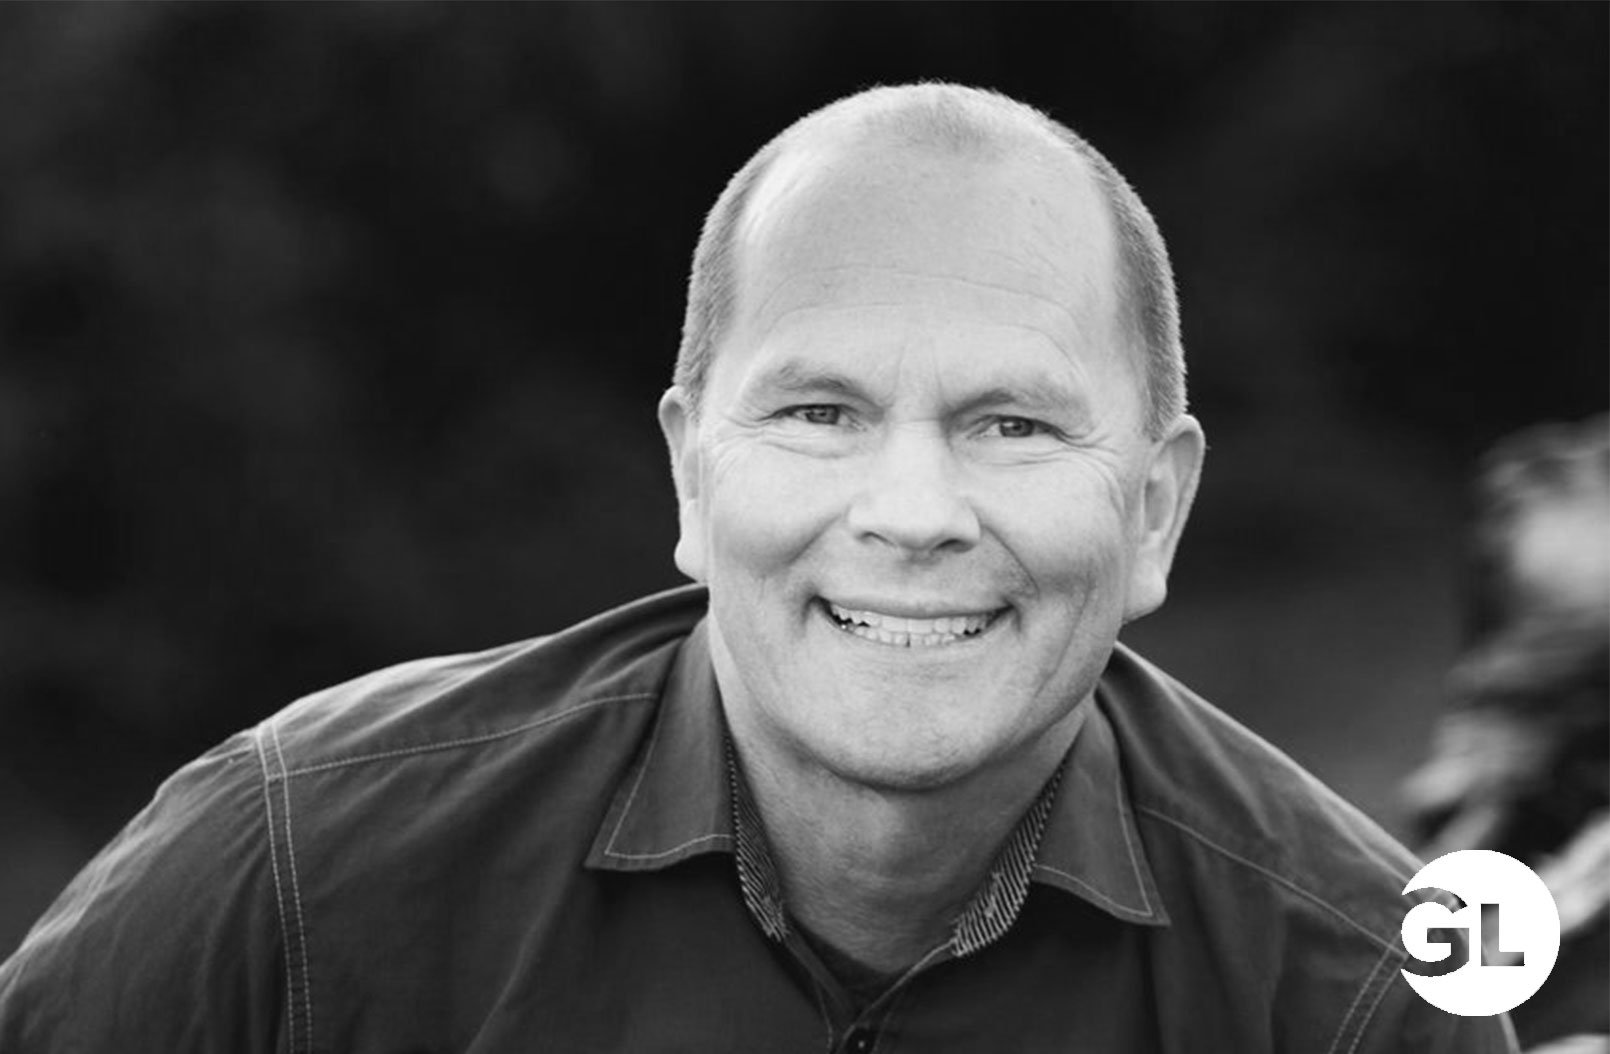 Steve Backlund, Global Legacy & Ignite Hope Ministries